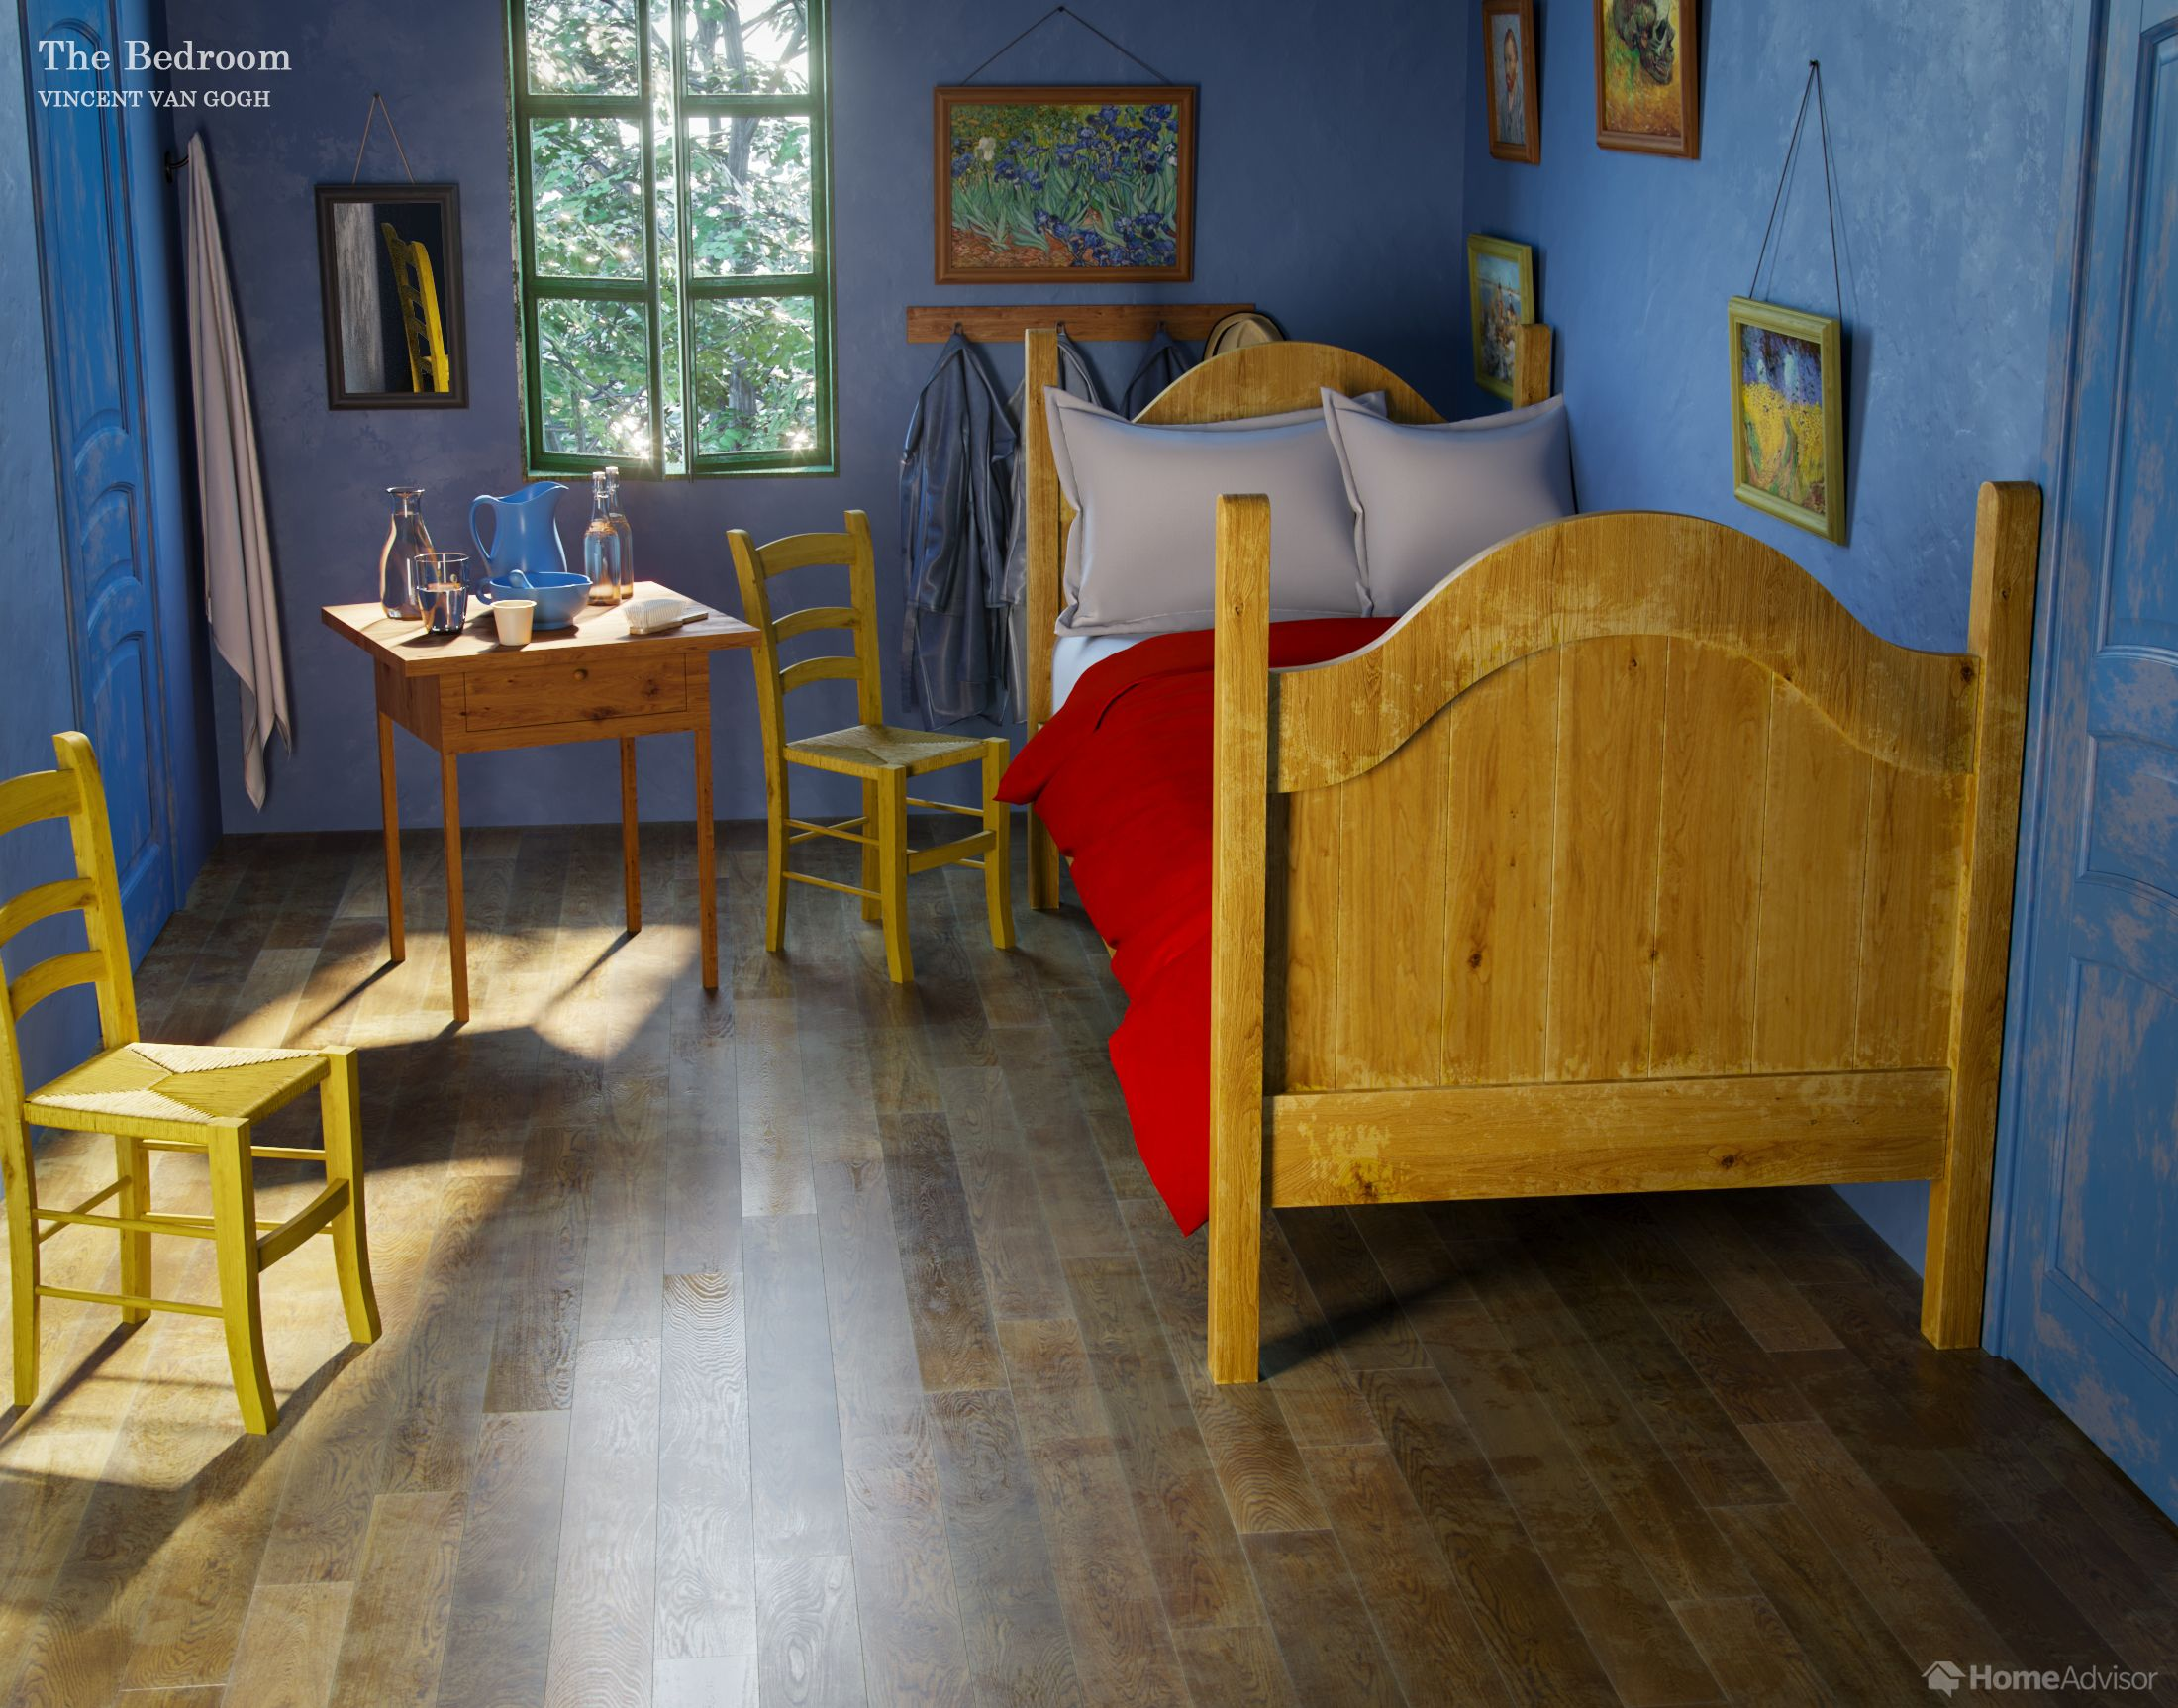 This is what Vincent Van Gogh's 'The Bedroom' painting would look like in real life